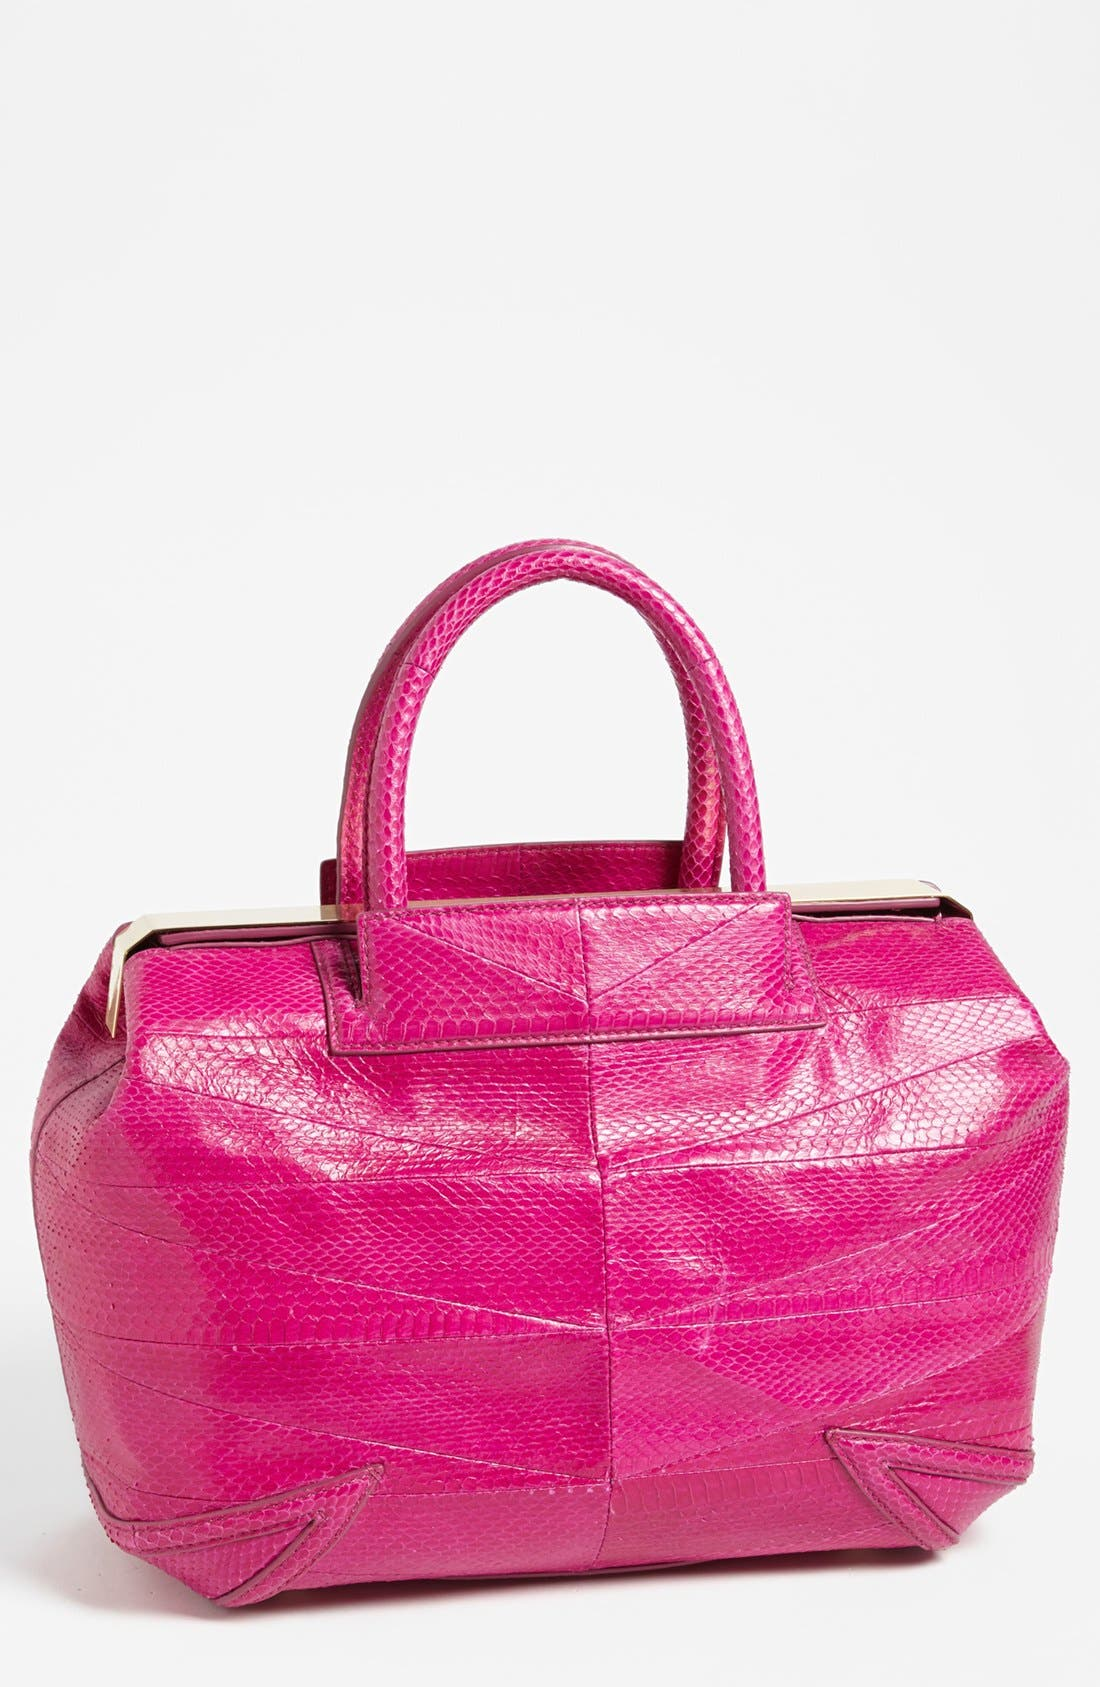 Alternate Image 1 Selected - B Brian Atwood 'Sophia' Leather Satchel